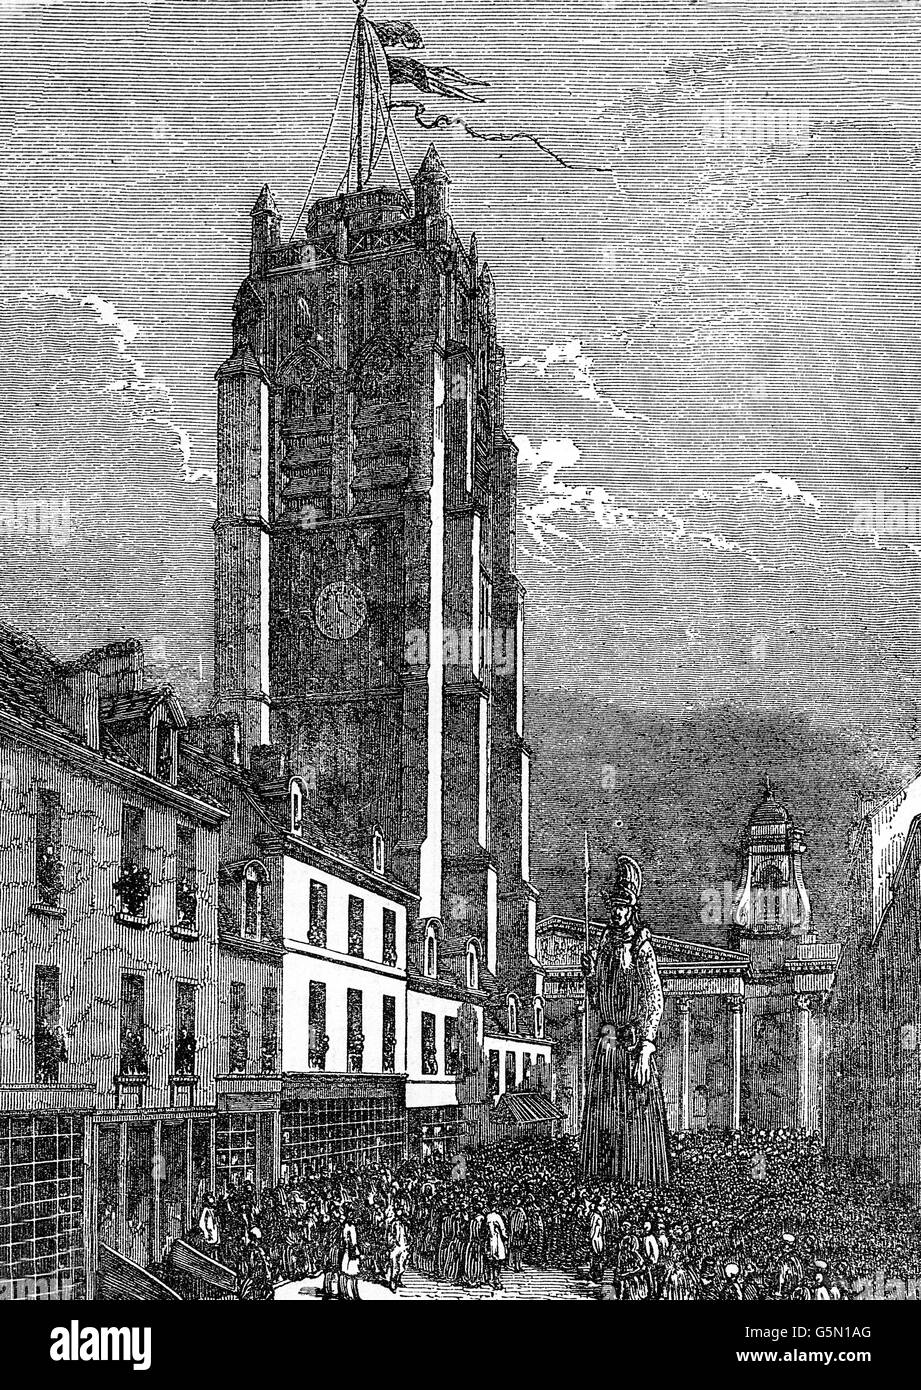 The Clock Tower in Dunkirk and Procession of Giants in 1676, a chance for fishermen to let off steam before braving - Stock Image